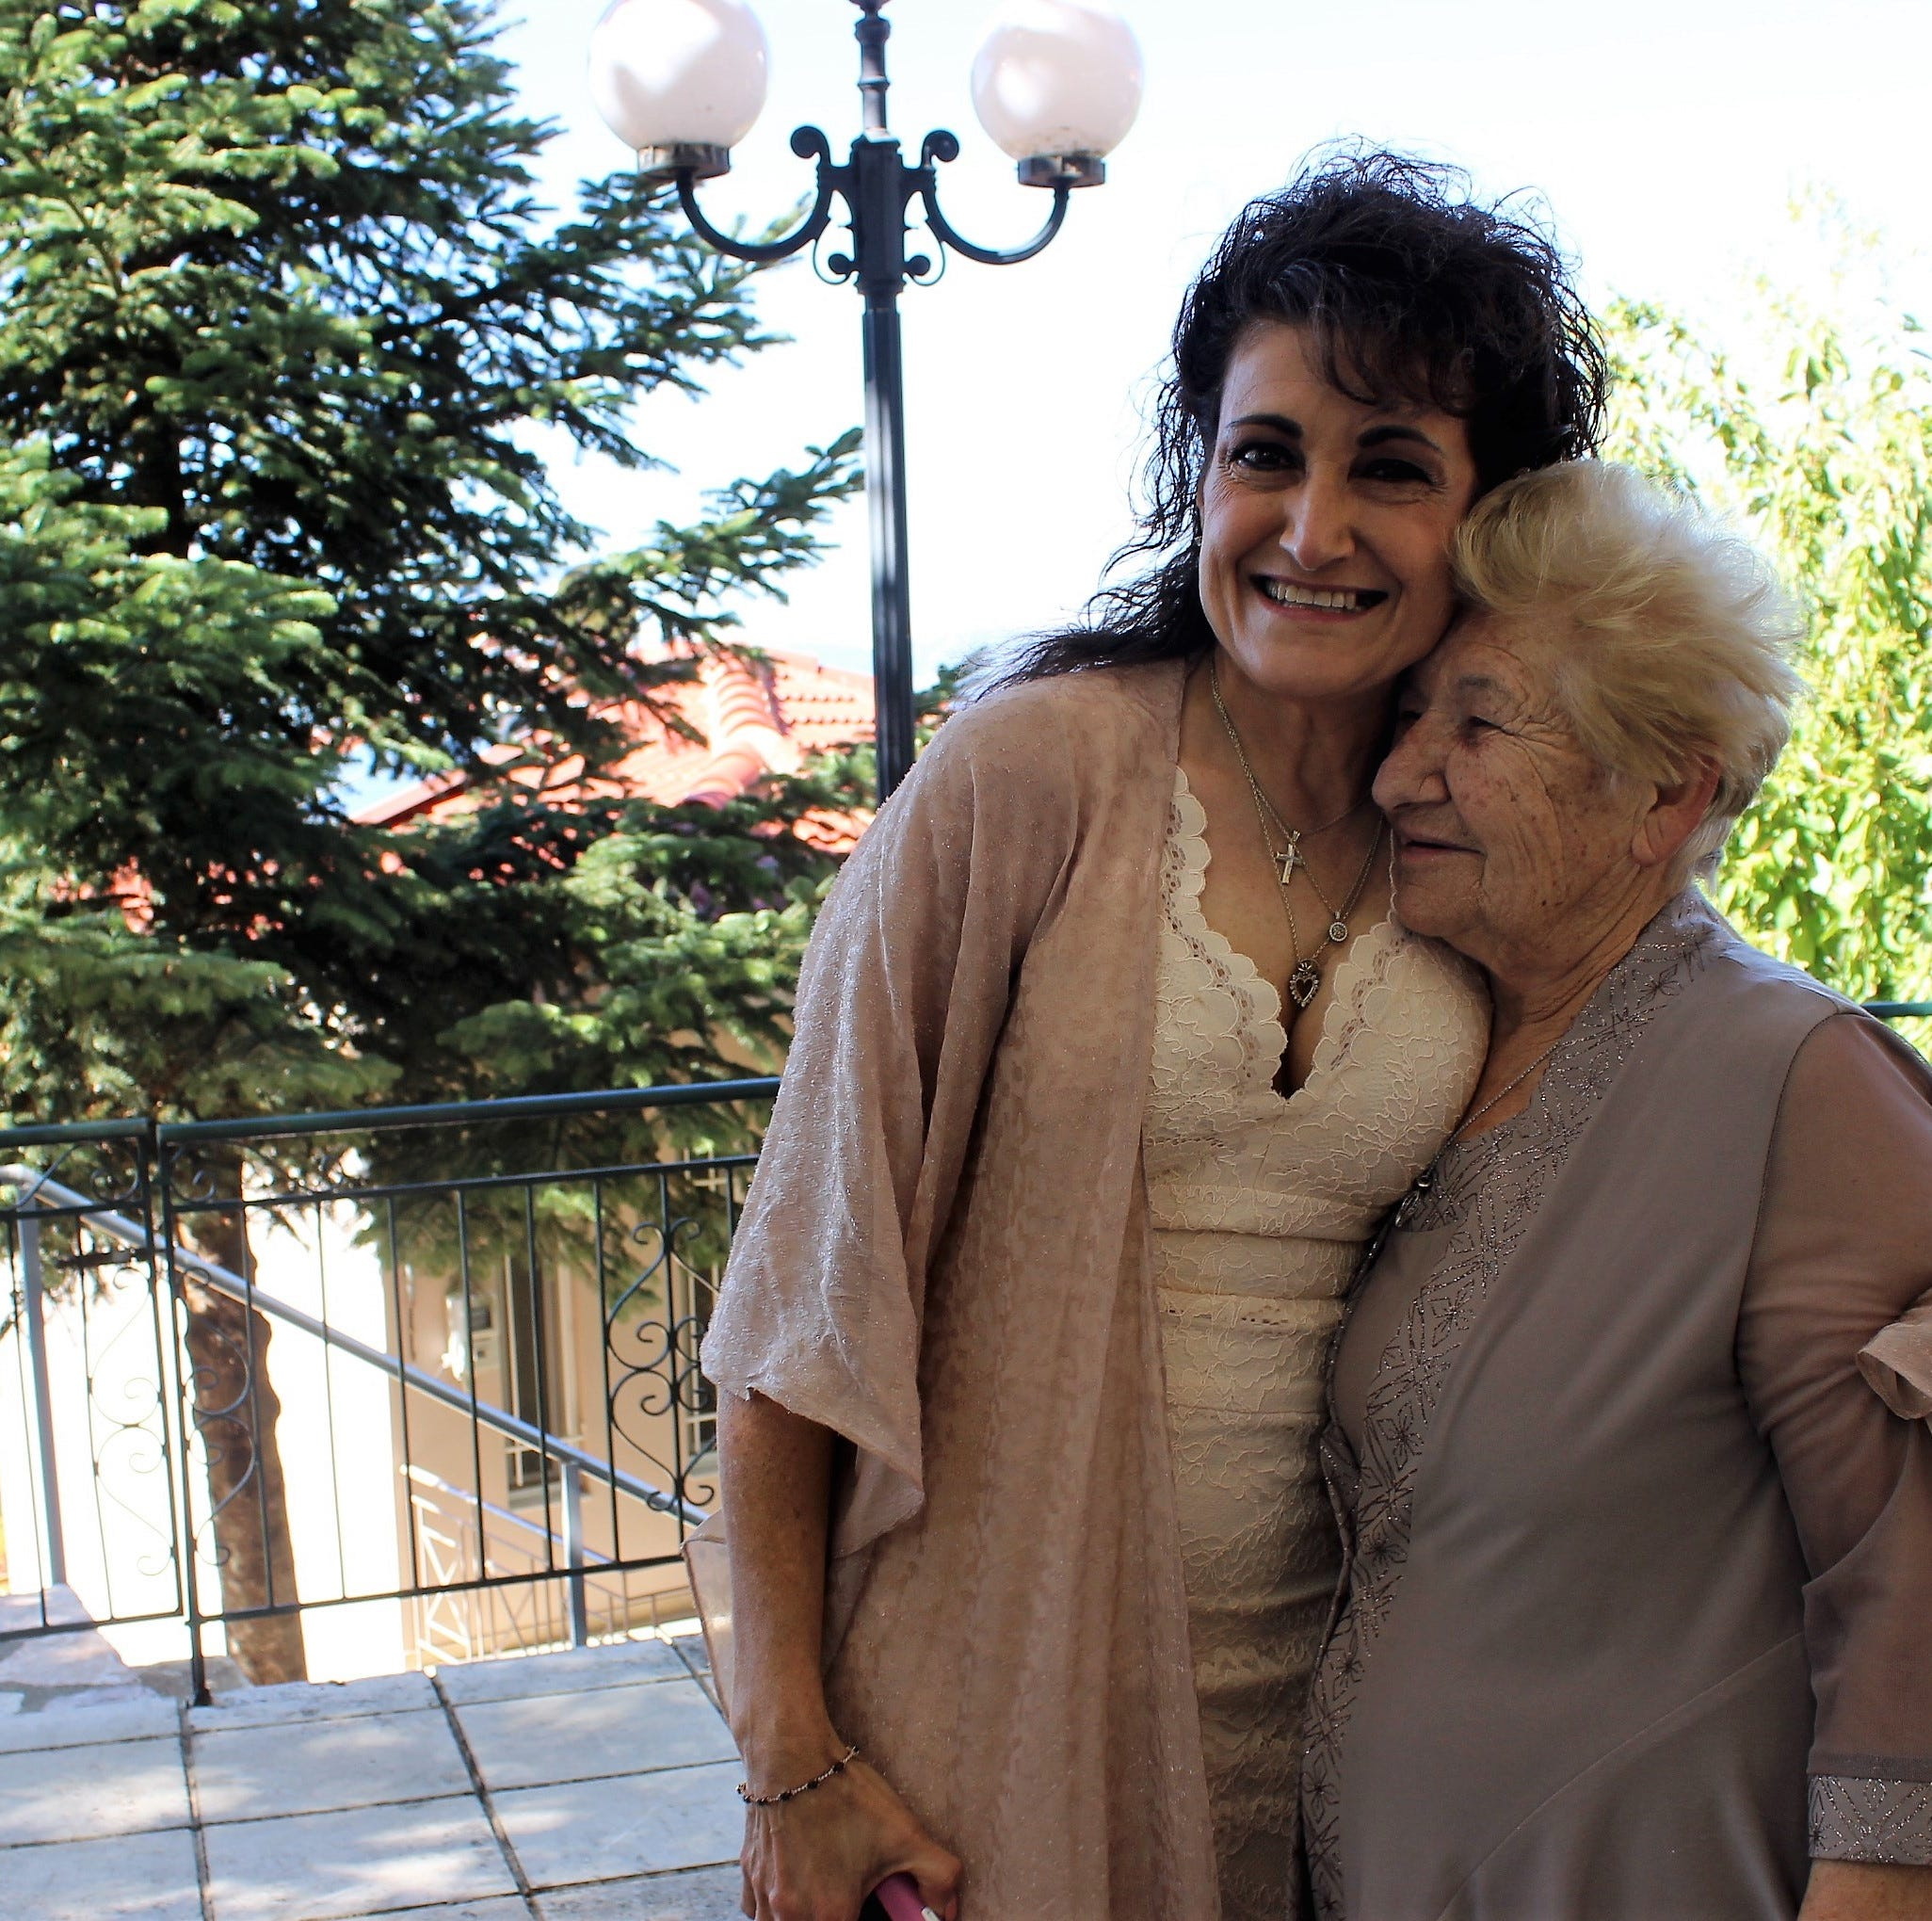 60-year-old Franklin woman finally looks for her birth family — and finds her mom in Greece